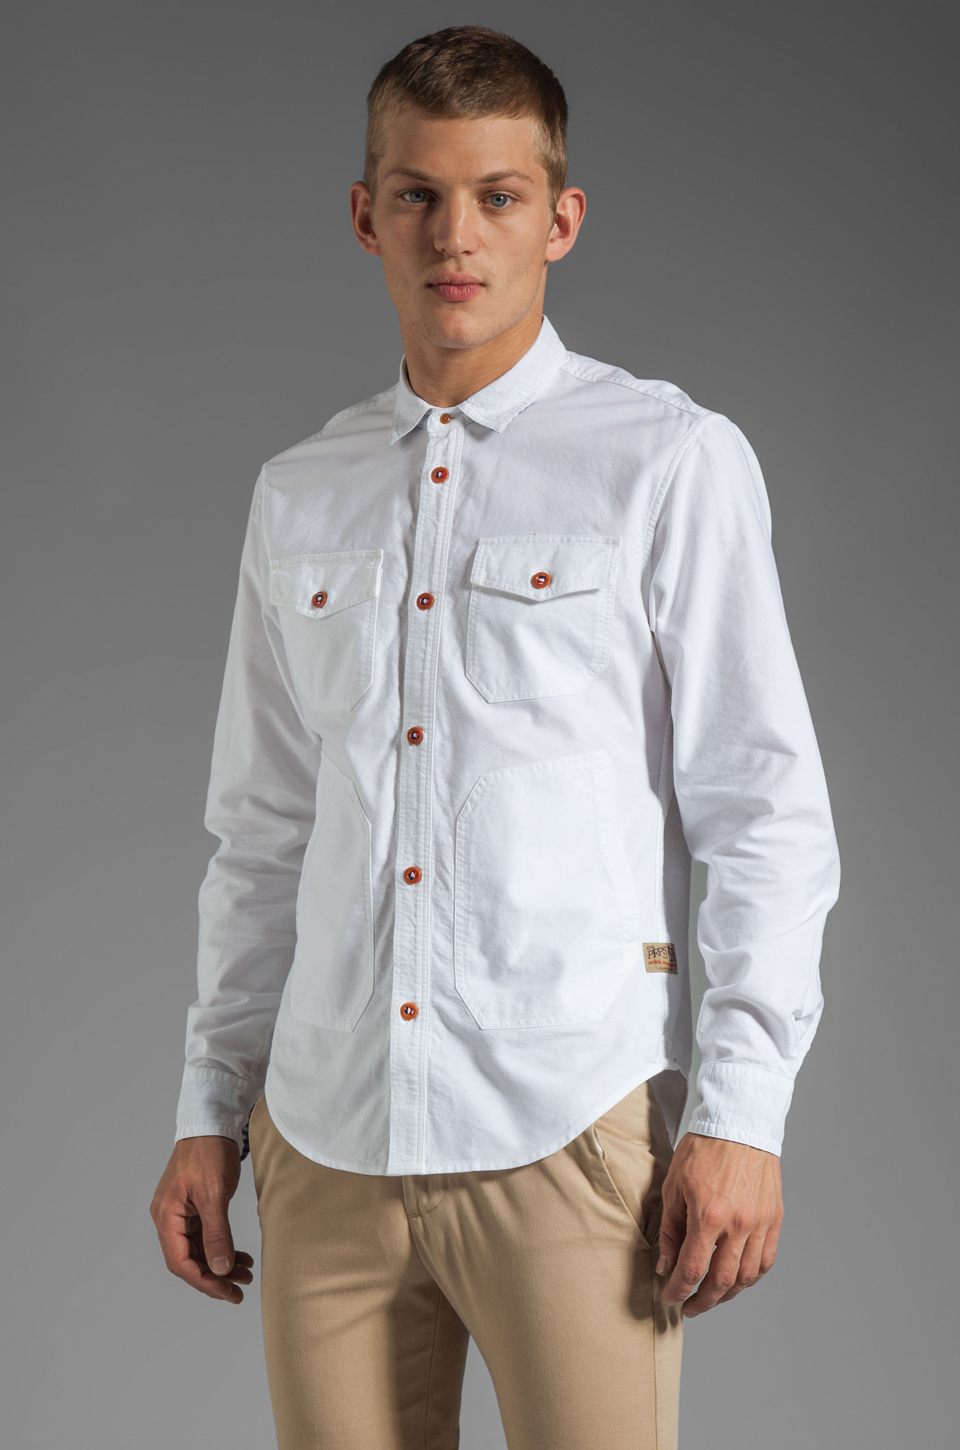 PRPS Goods & Co. Oxford Shirt in White